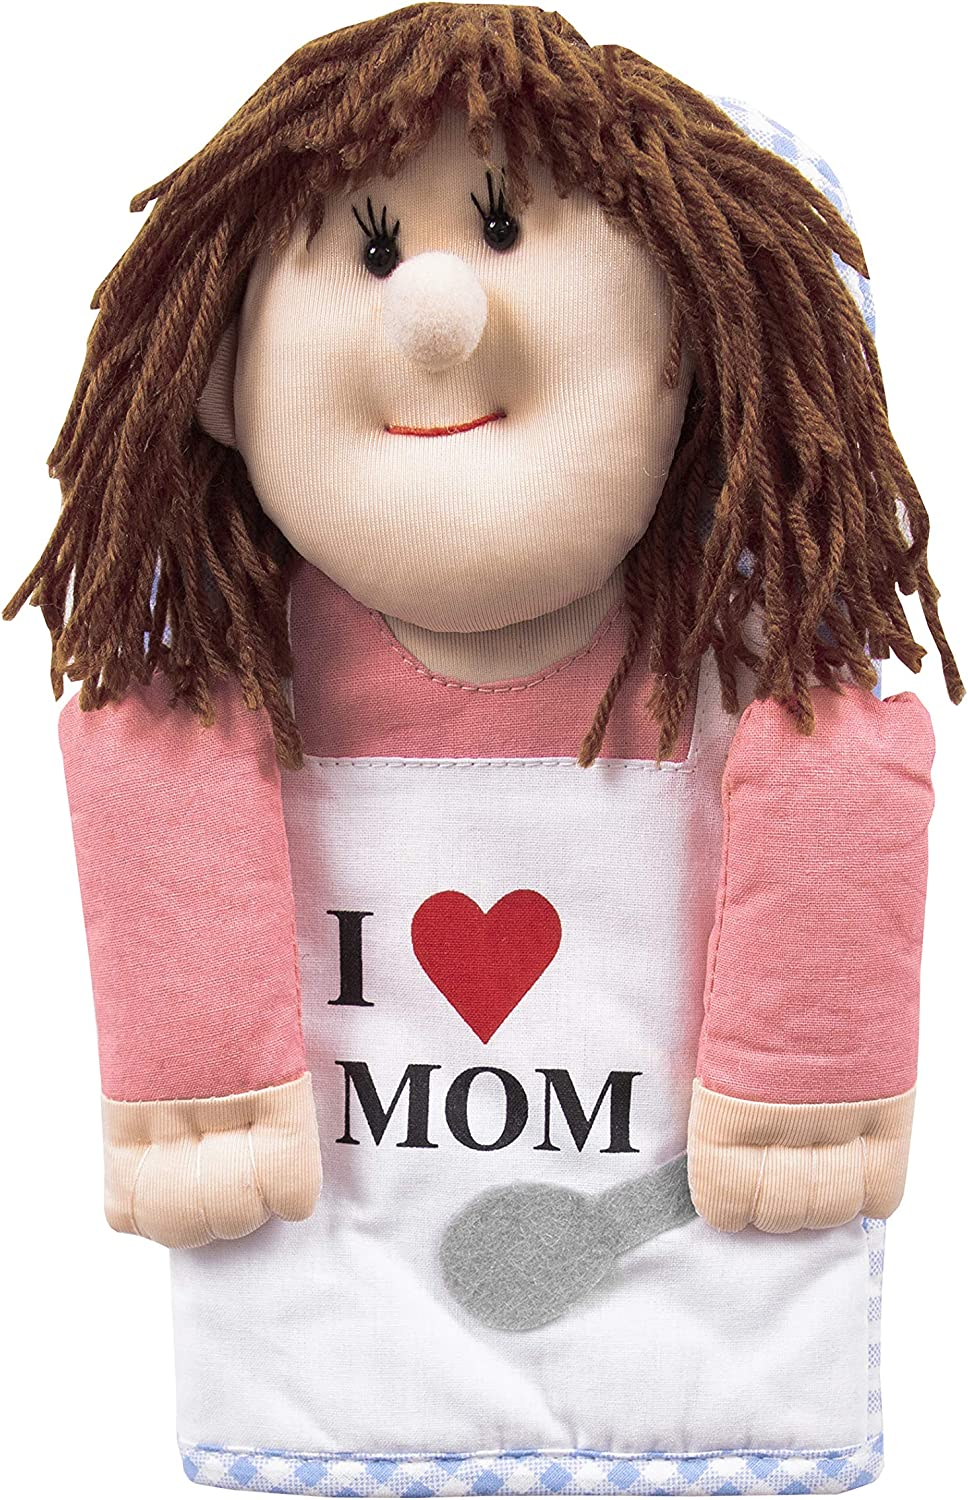 """Ritz Kitchen Friends Novelty Cotton Oven Mitt, Decorative Item Only, Great Gift for Mom, Kitchen Decoration, Mothers Day Present, Gifts for Women 6"""" x 11"""", Mom, Single Unit"""